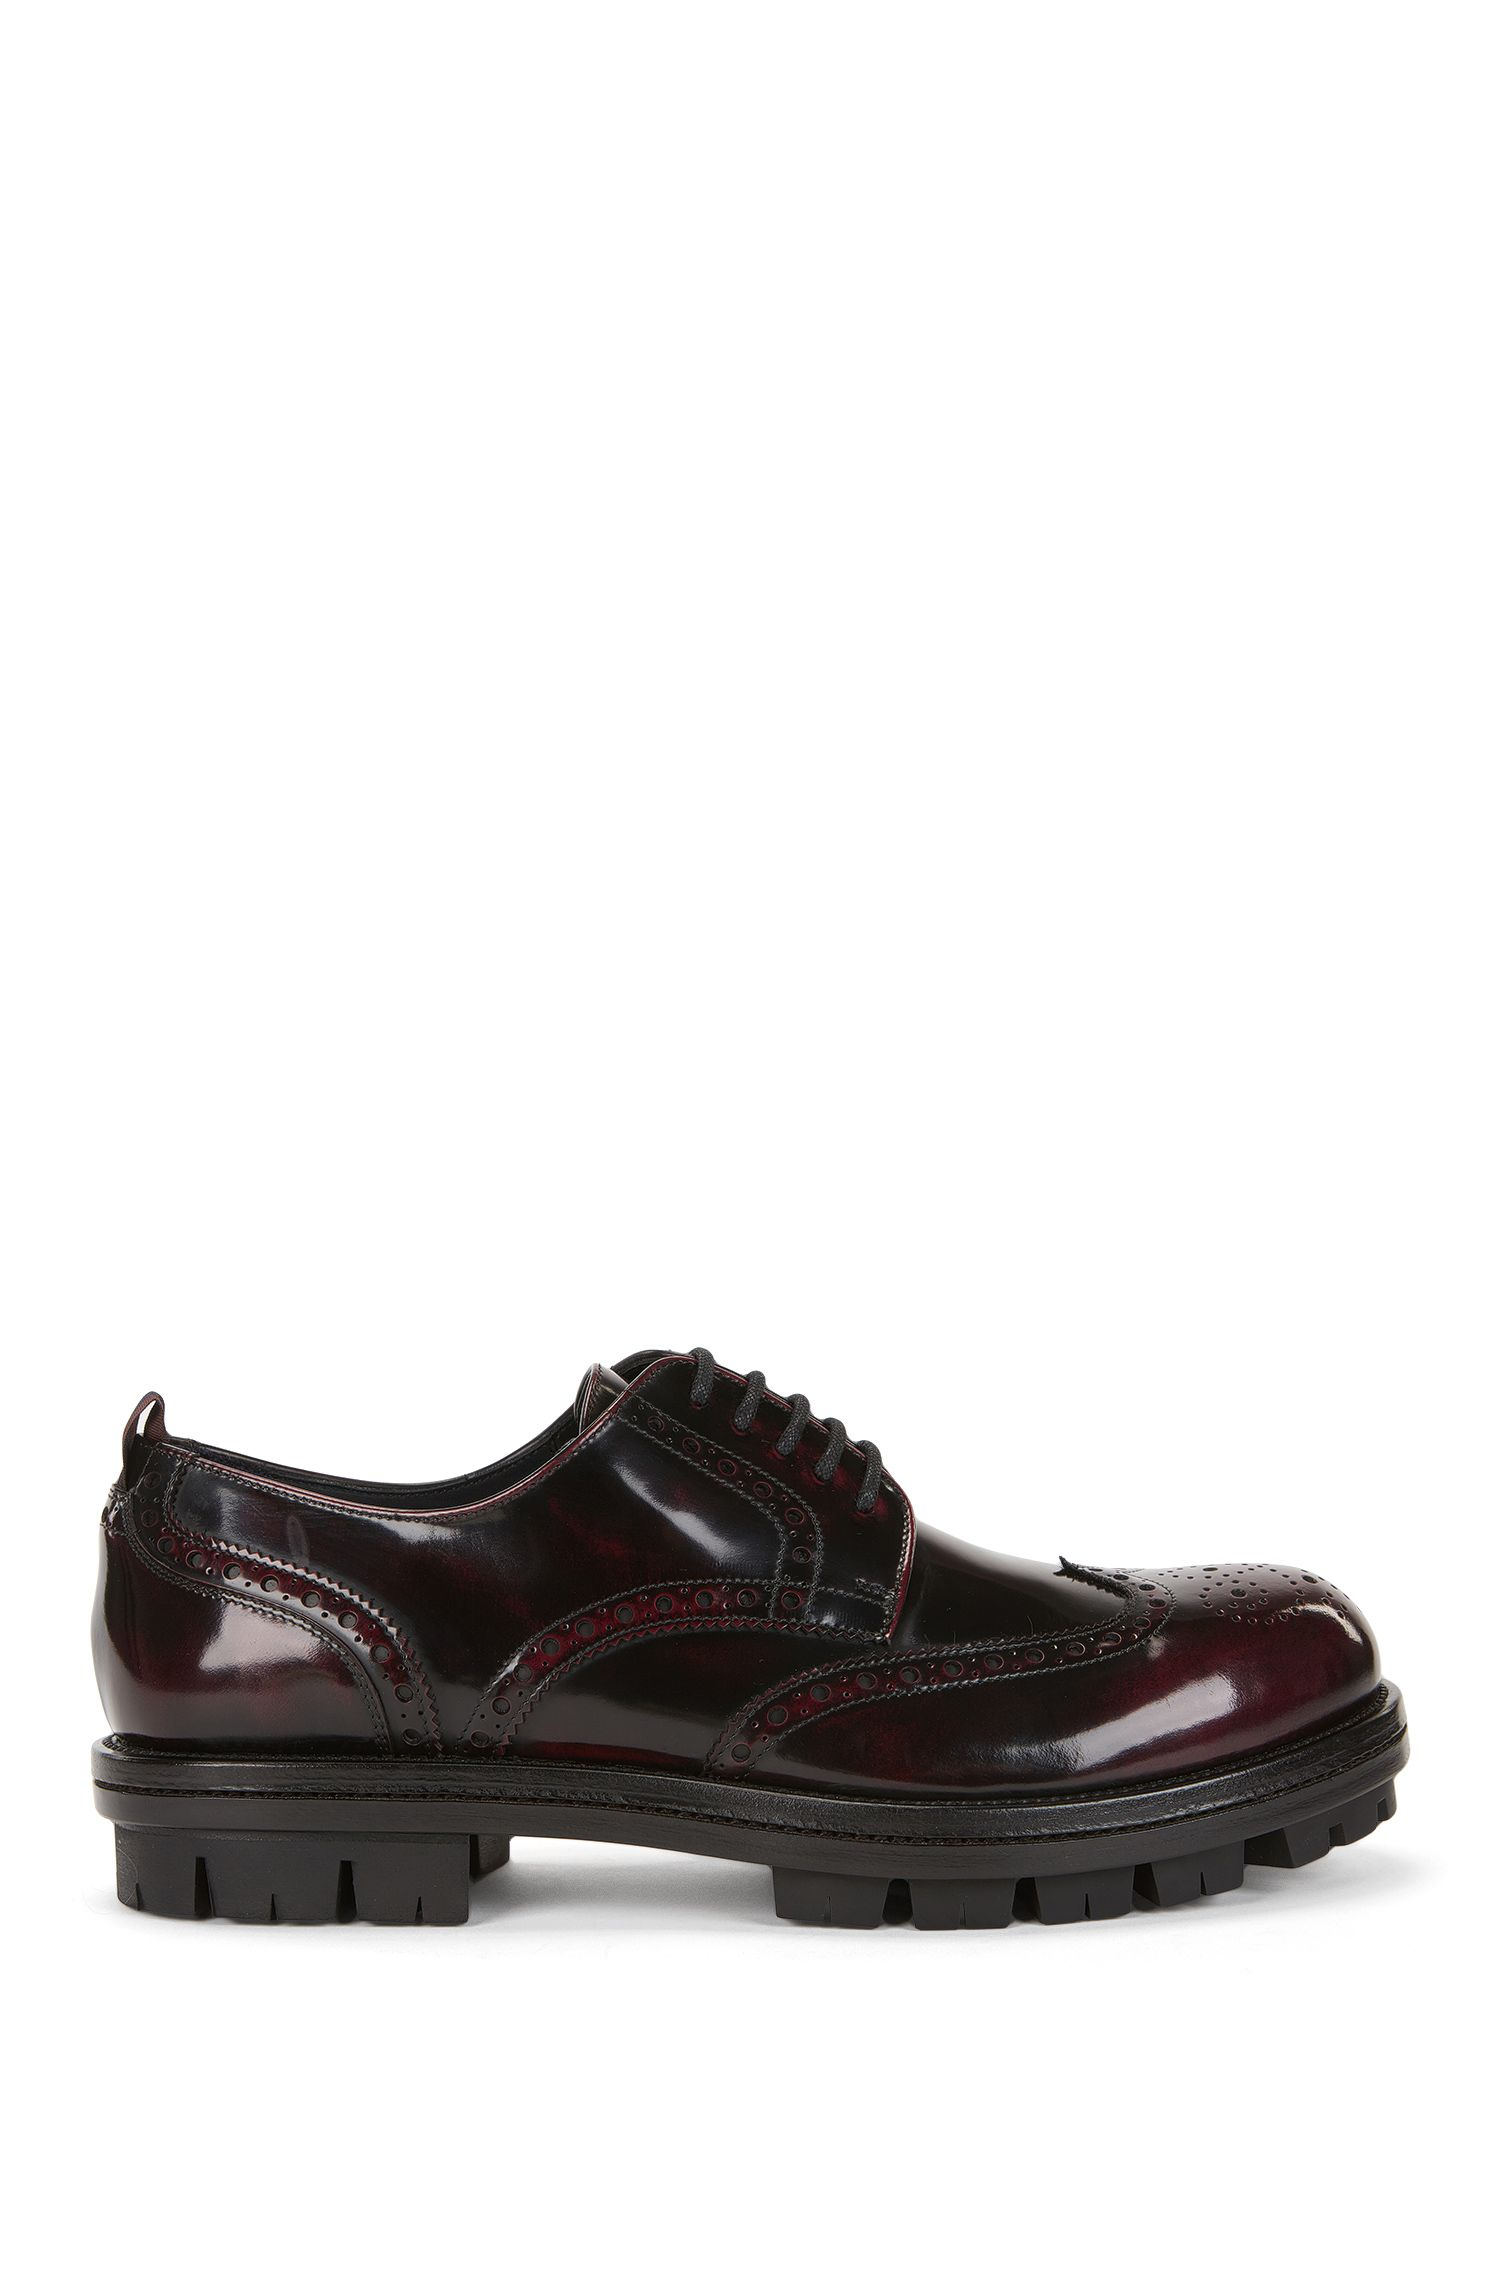 Leather Derby shoes with wingtip details